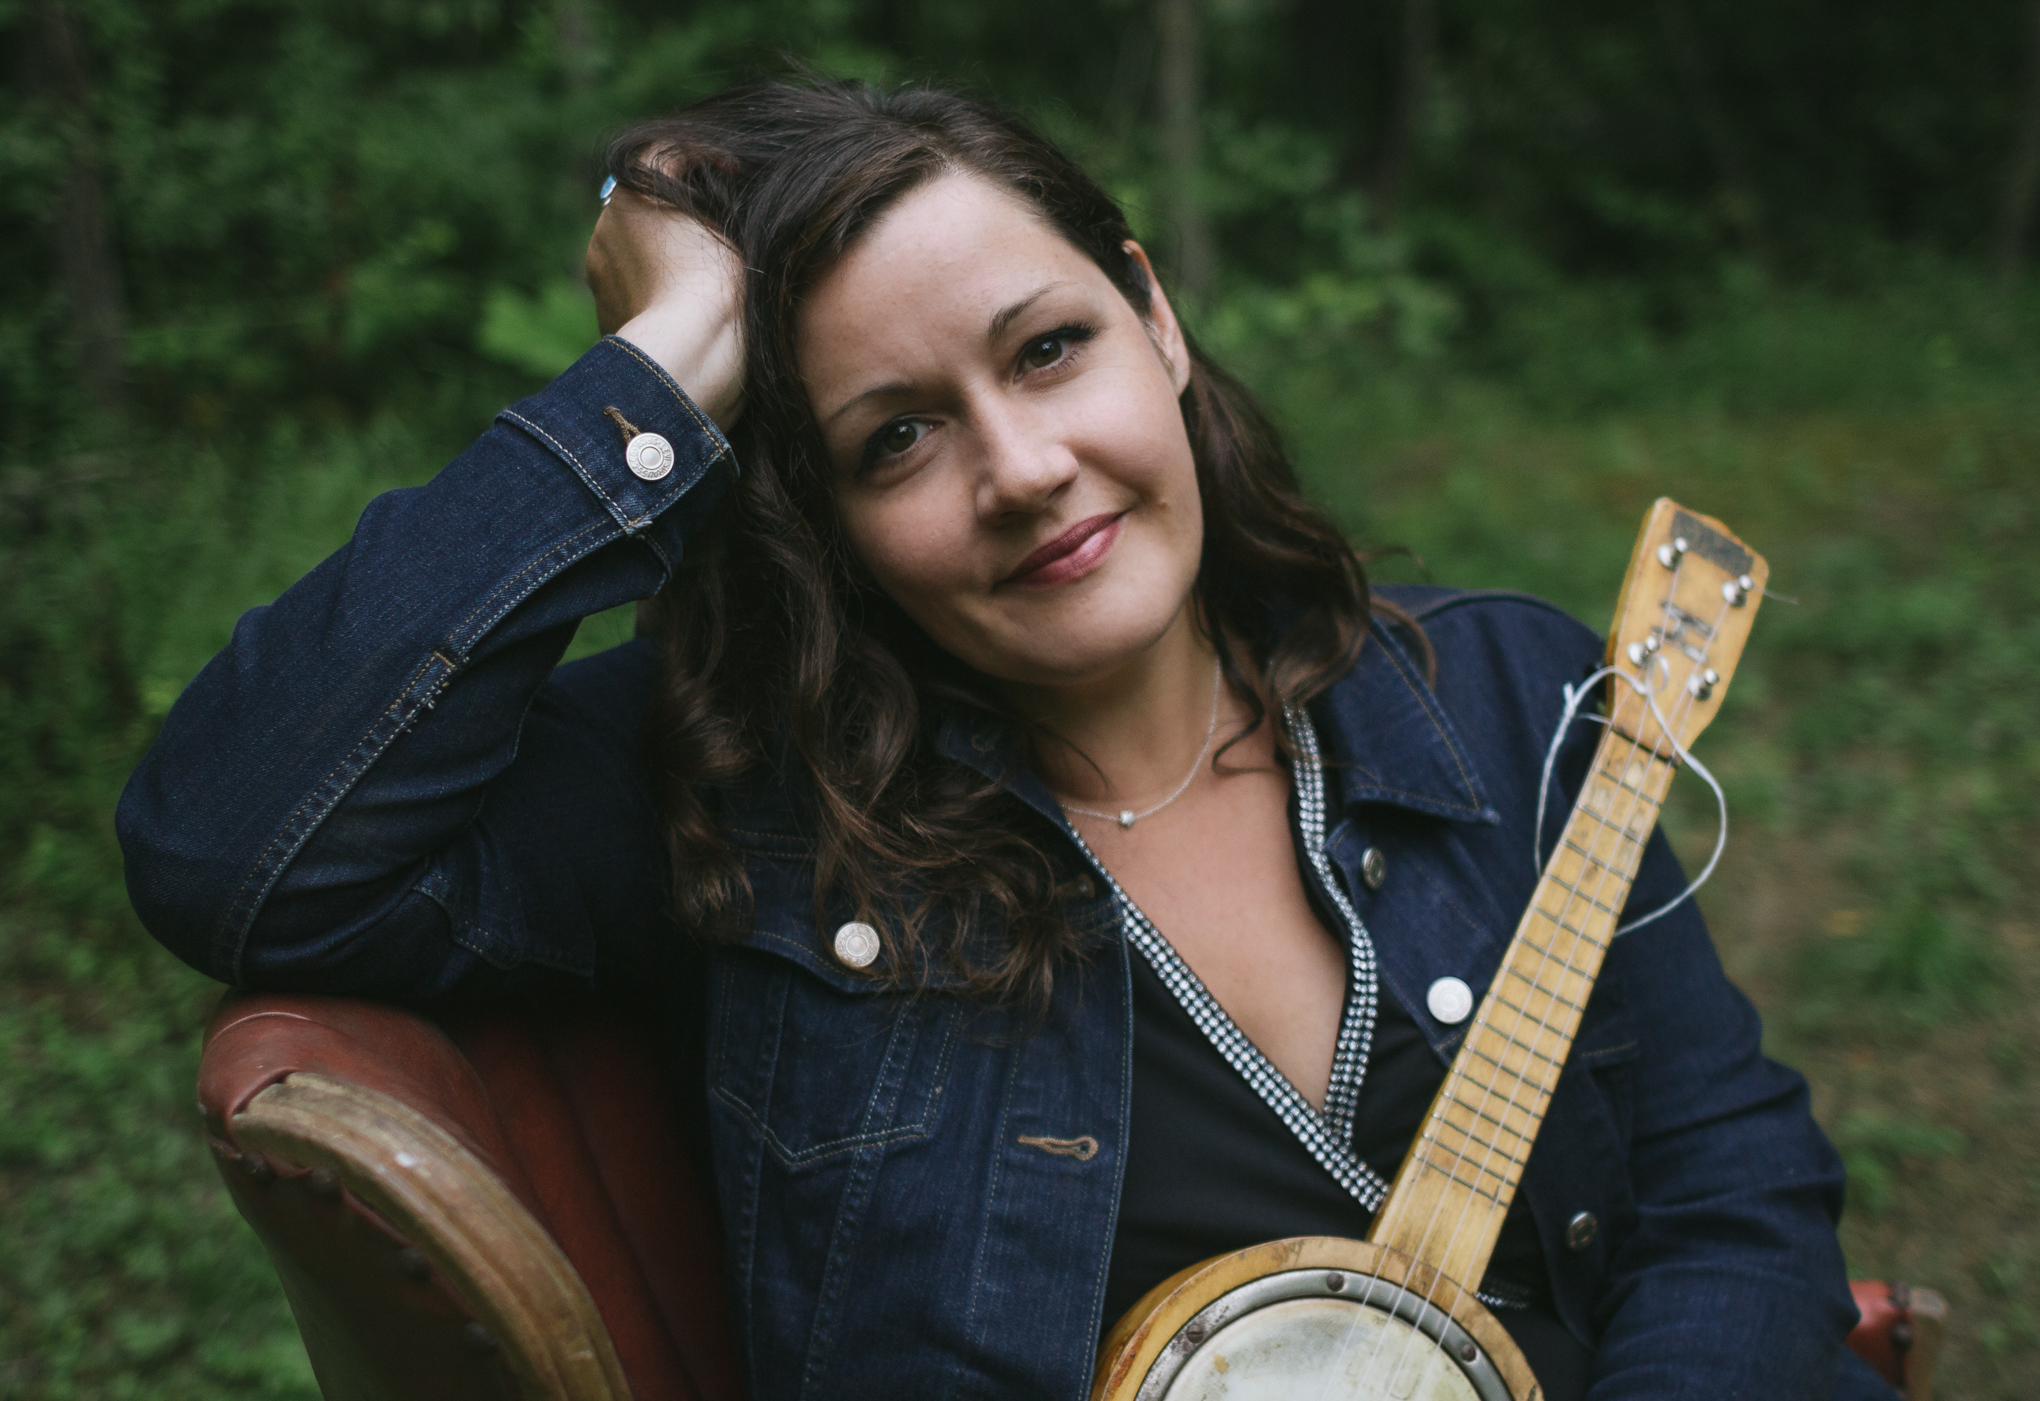 Photo of posed woman with light skin and long dark hair holding a banjo